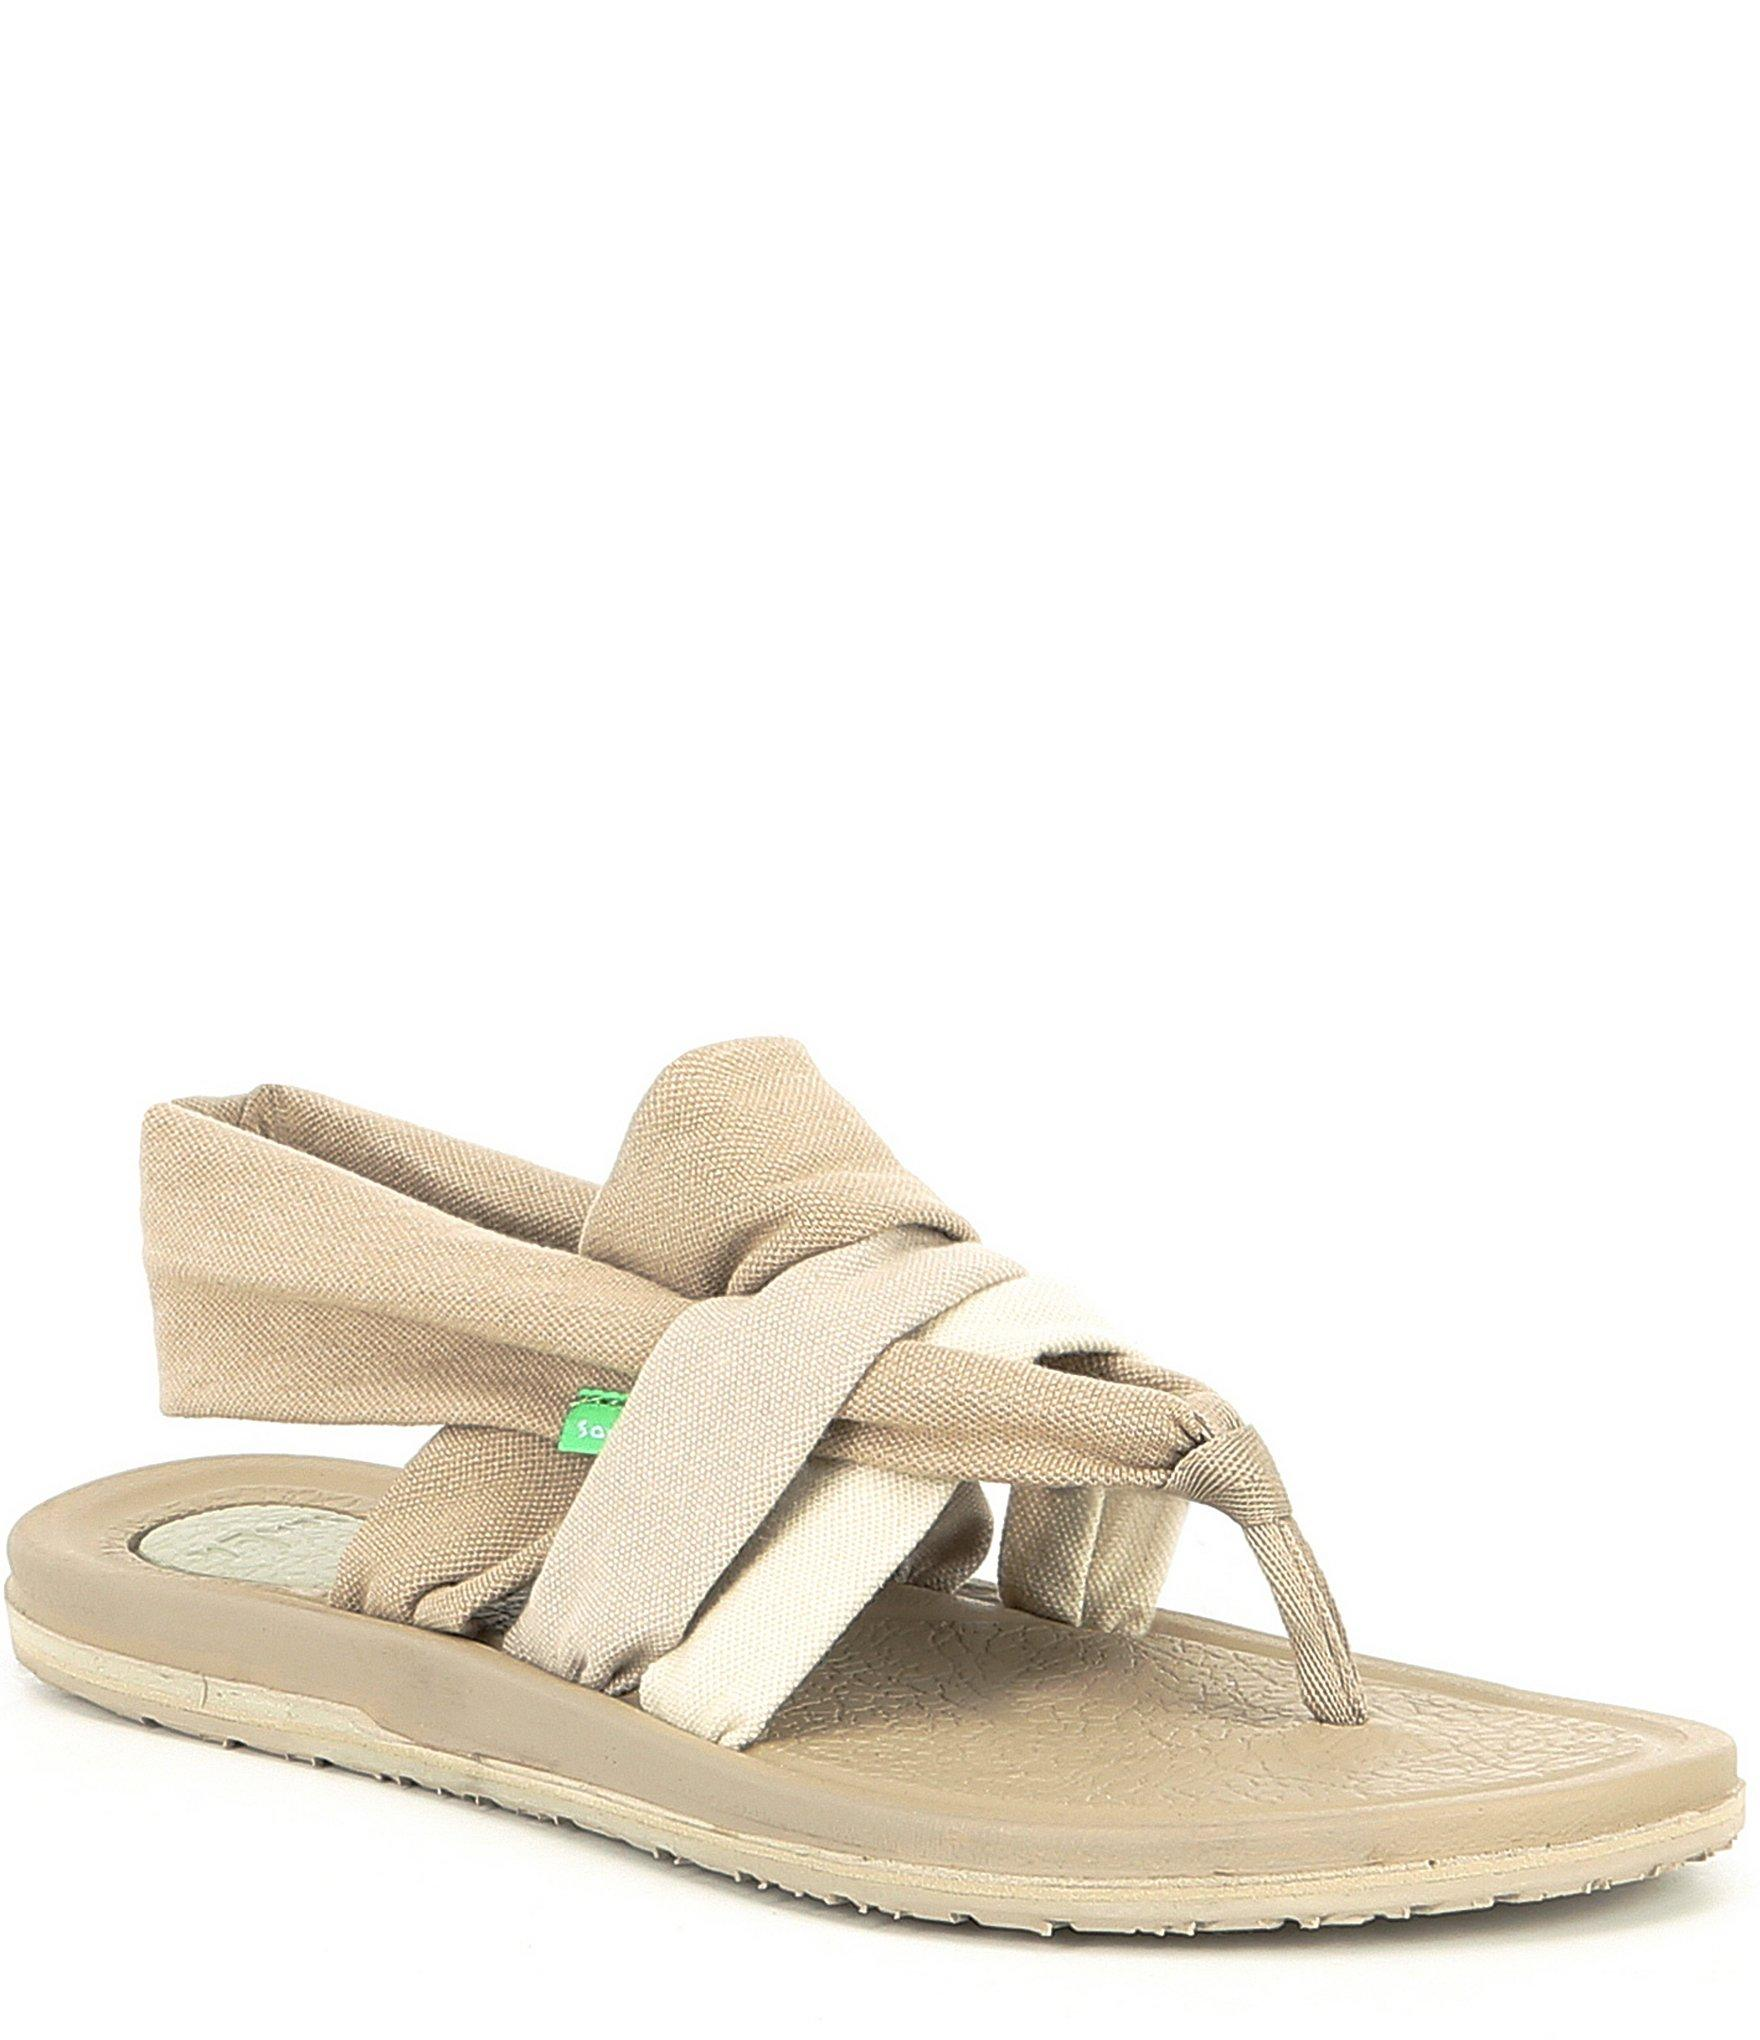 Sanuk Yoga Sling 3 Colorblock Sandals In Natural Lyst